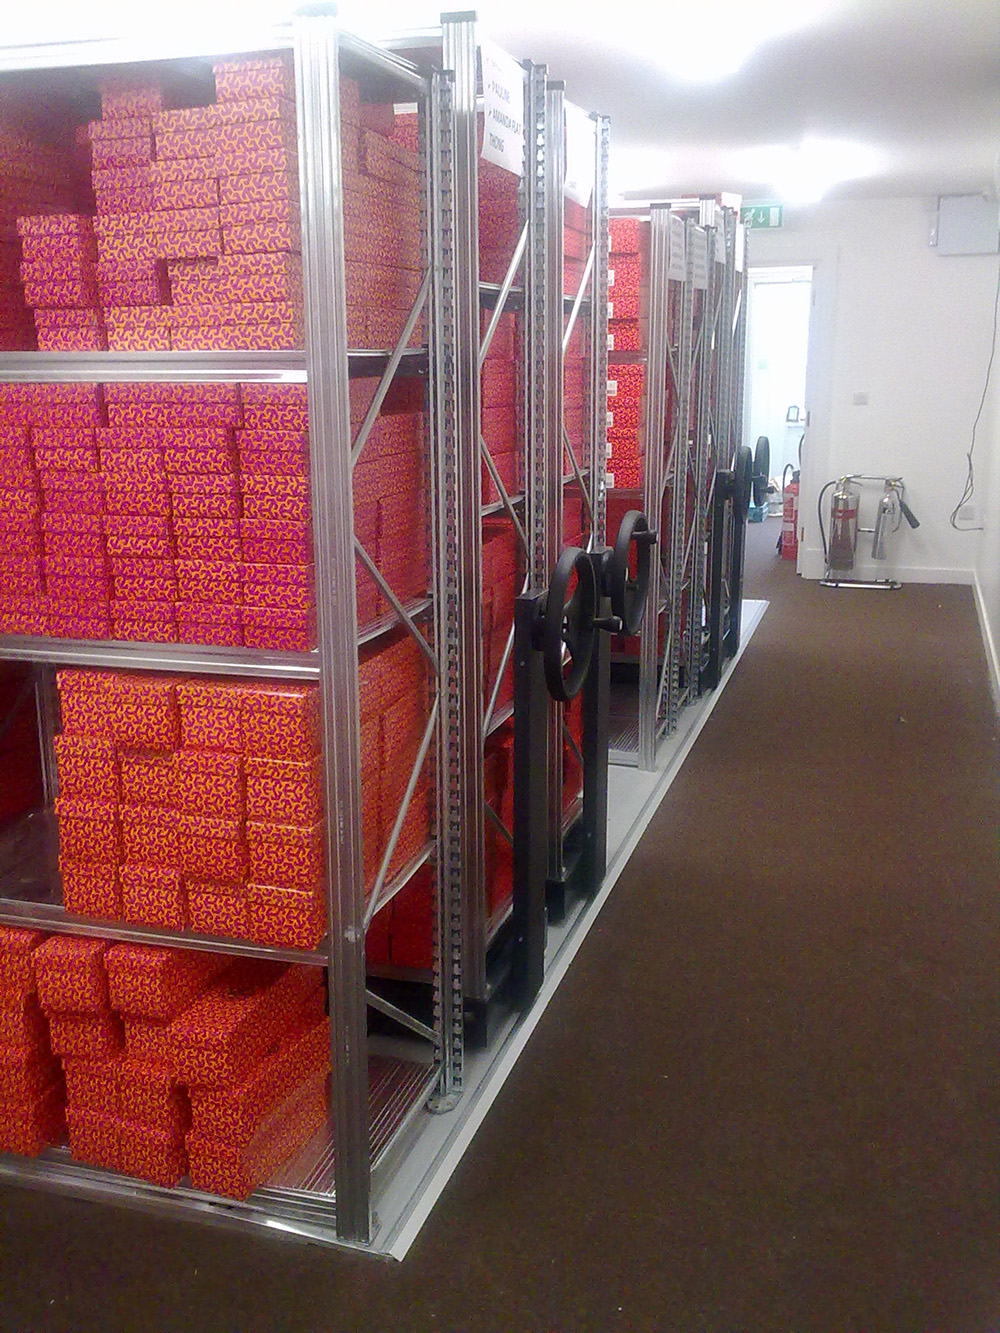 Image of Retail Shelving